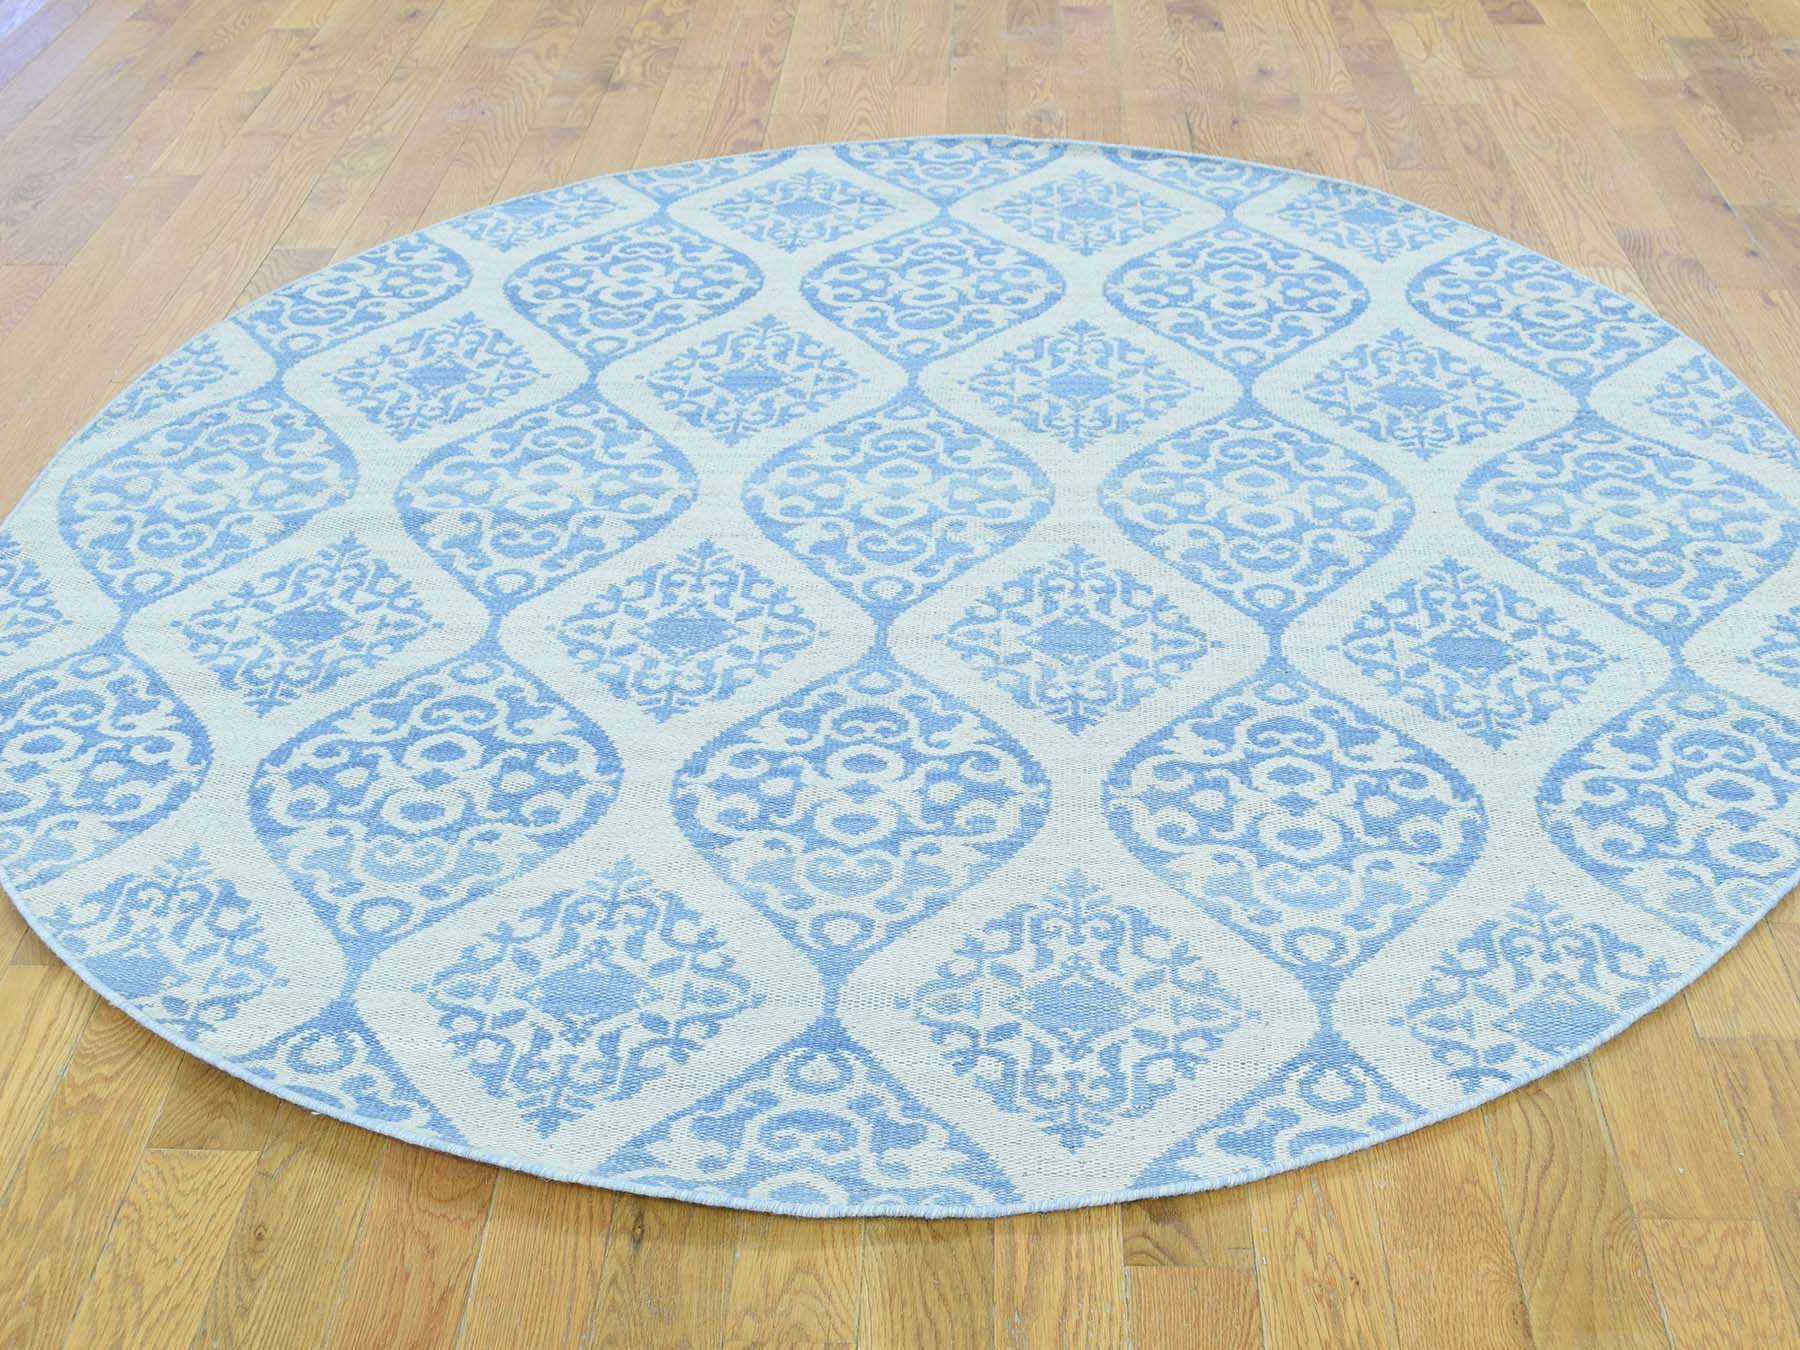 6-x6- Reversible Flat Weave Round Hand Woven Durie Kilim Rug